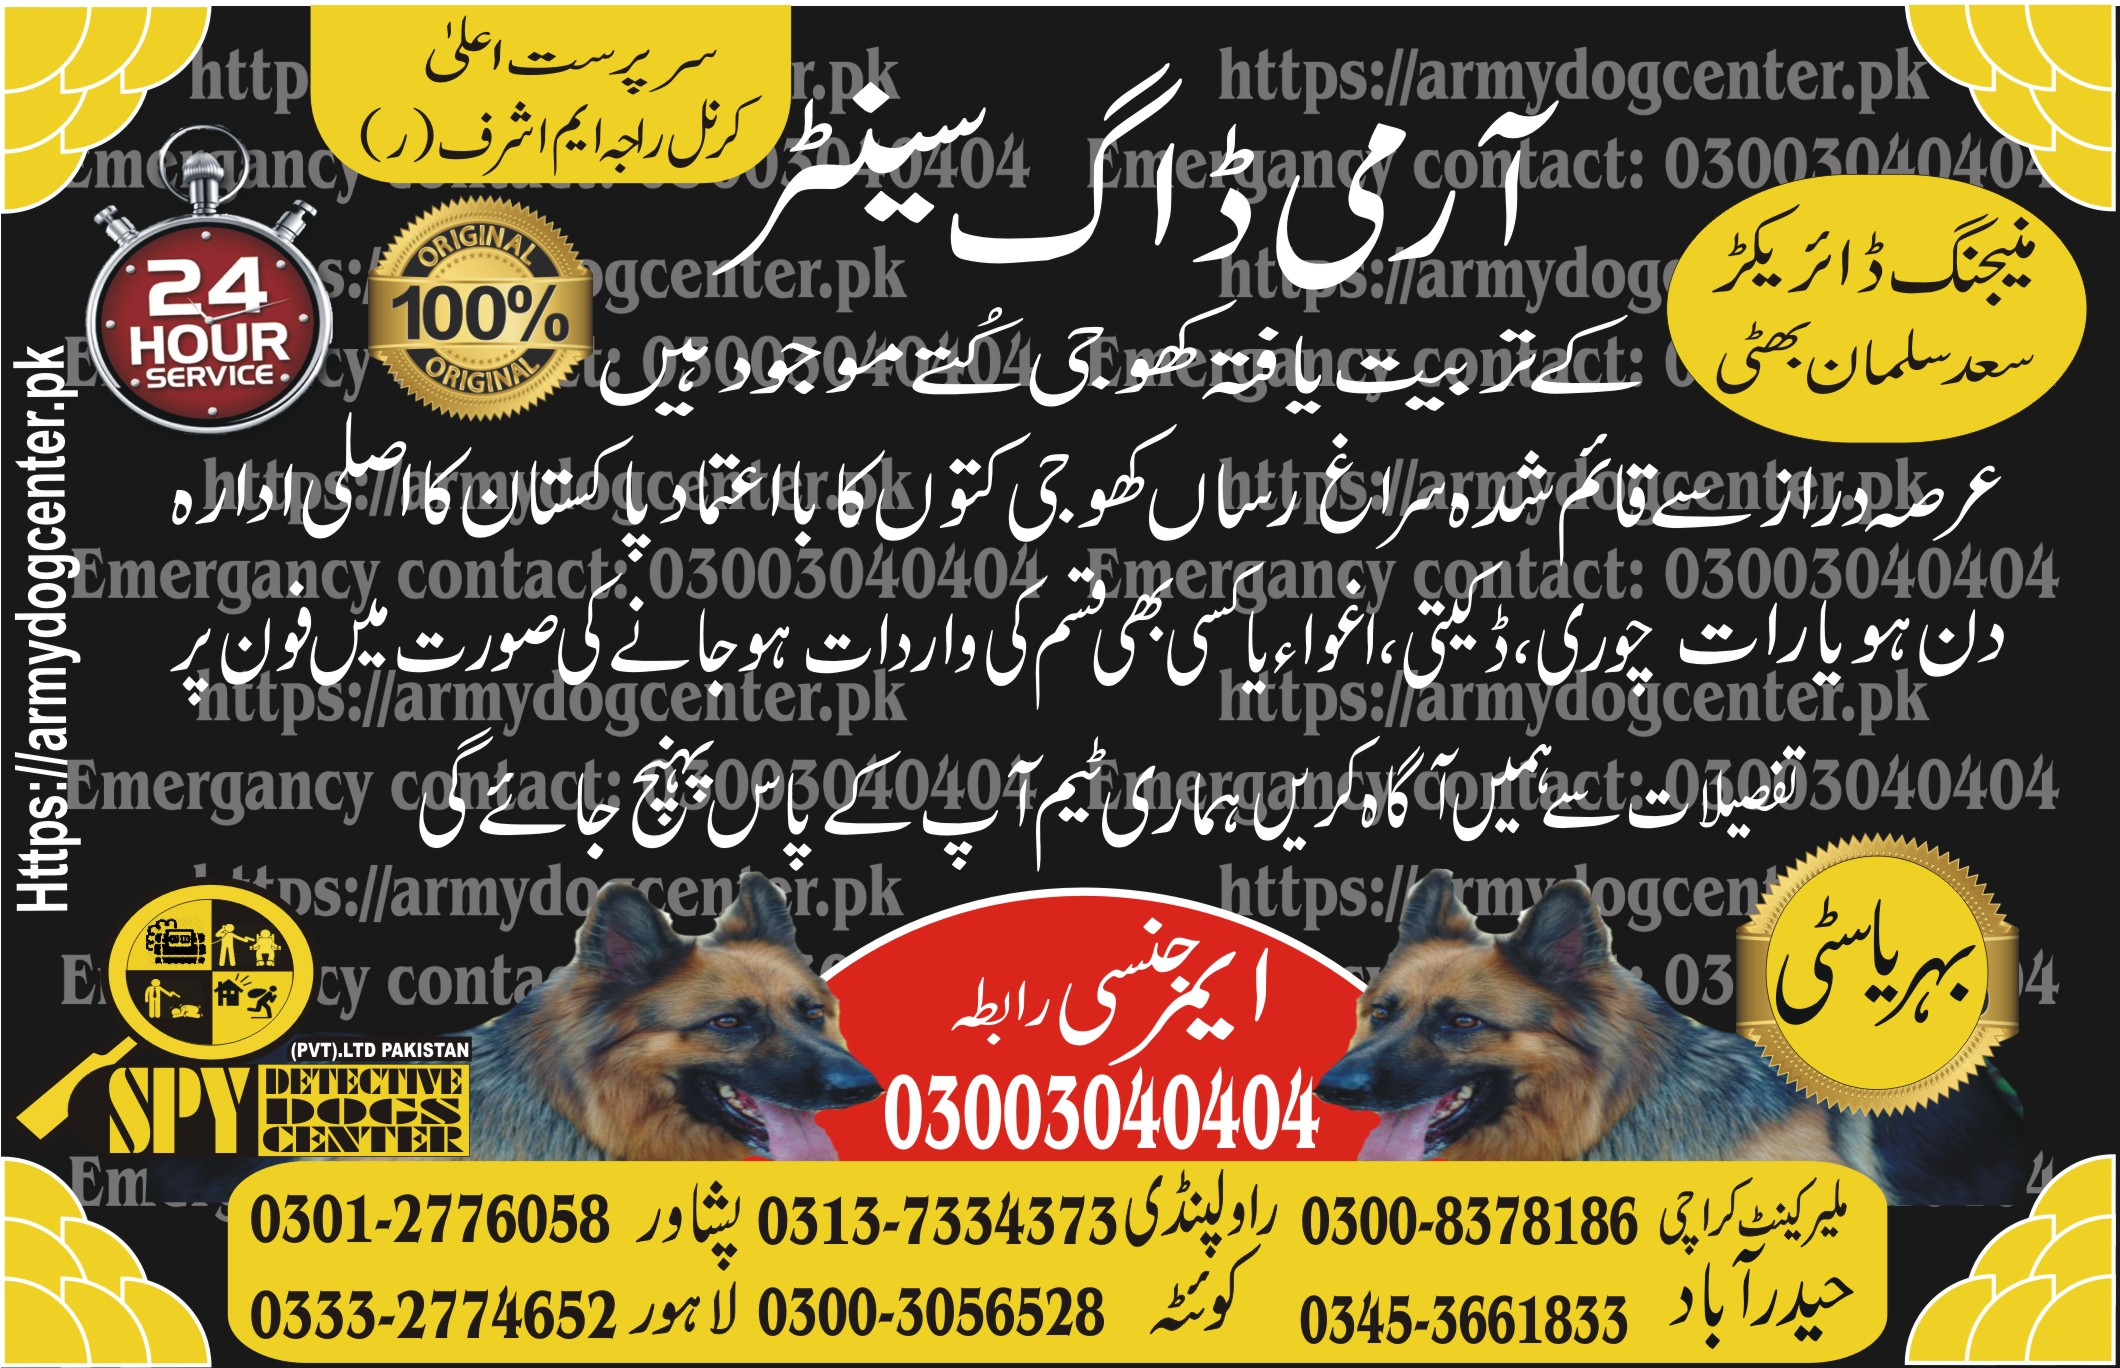 Army Dog Center Bhiria City Sindh